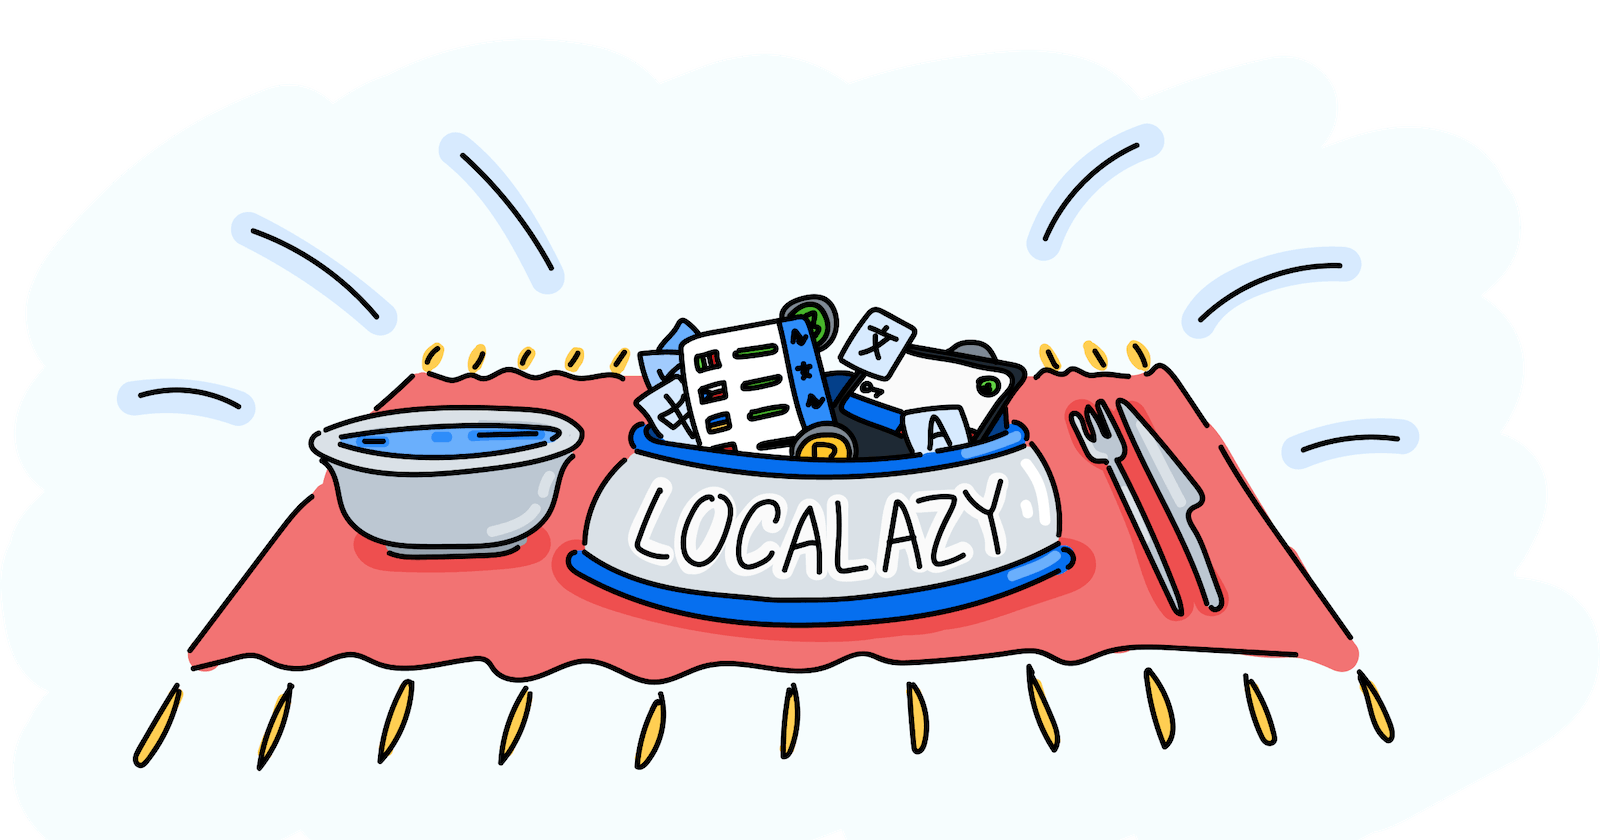 The passion and the dogfooding of Localazy